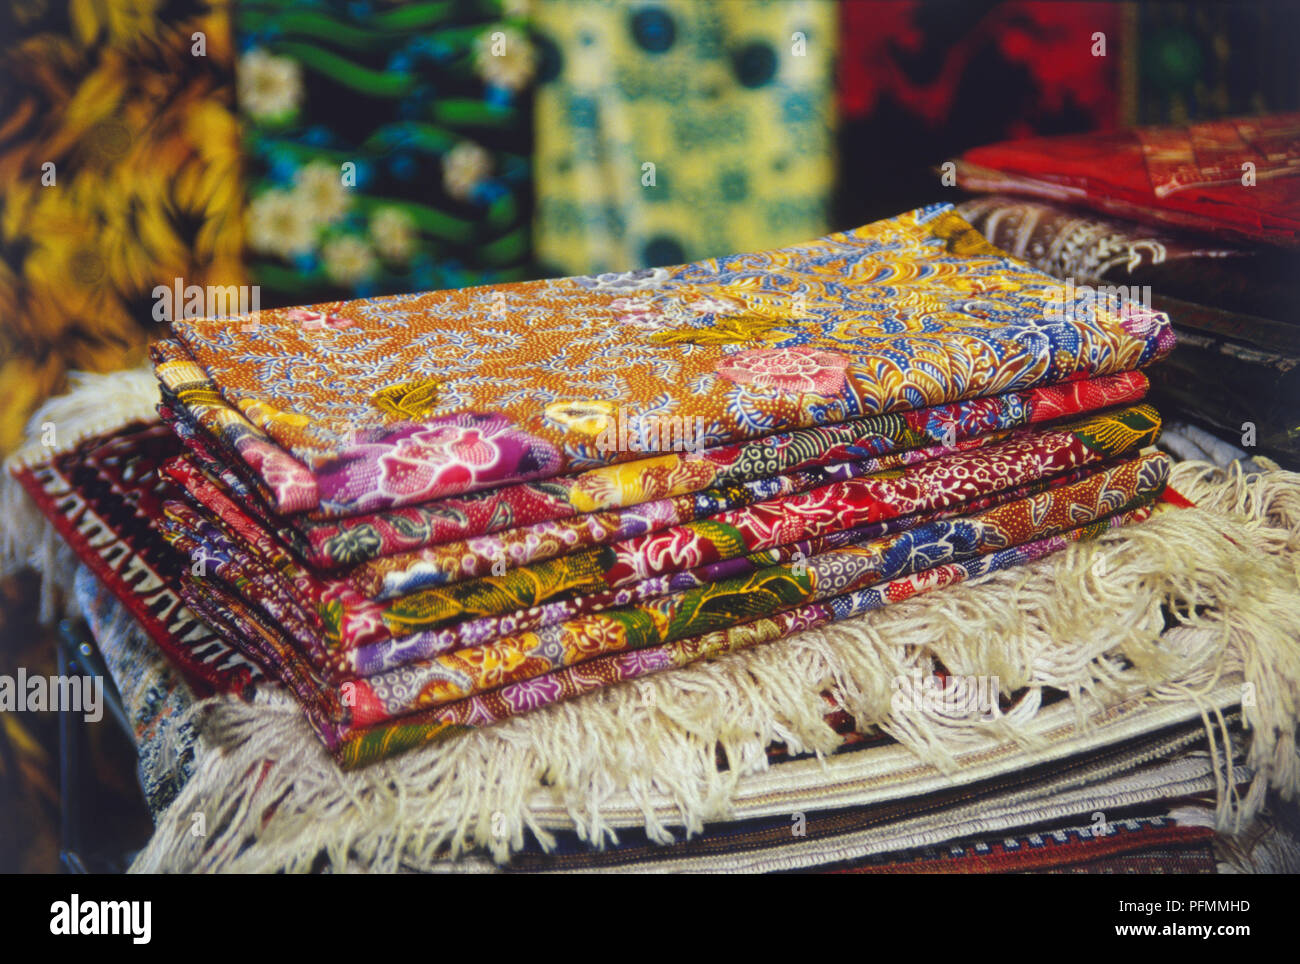 Singapore, pile of traditional oriental textiles, vivid